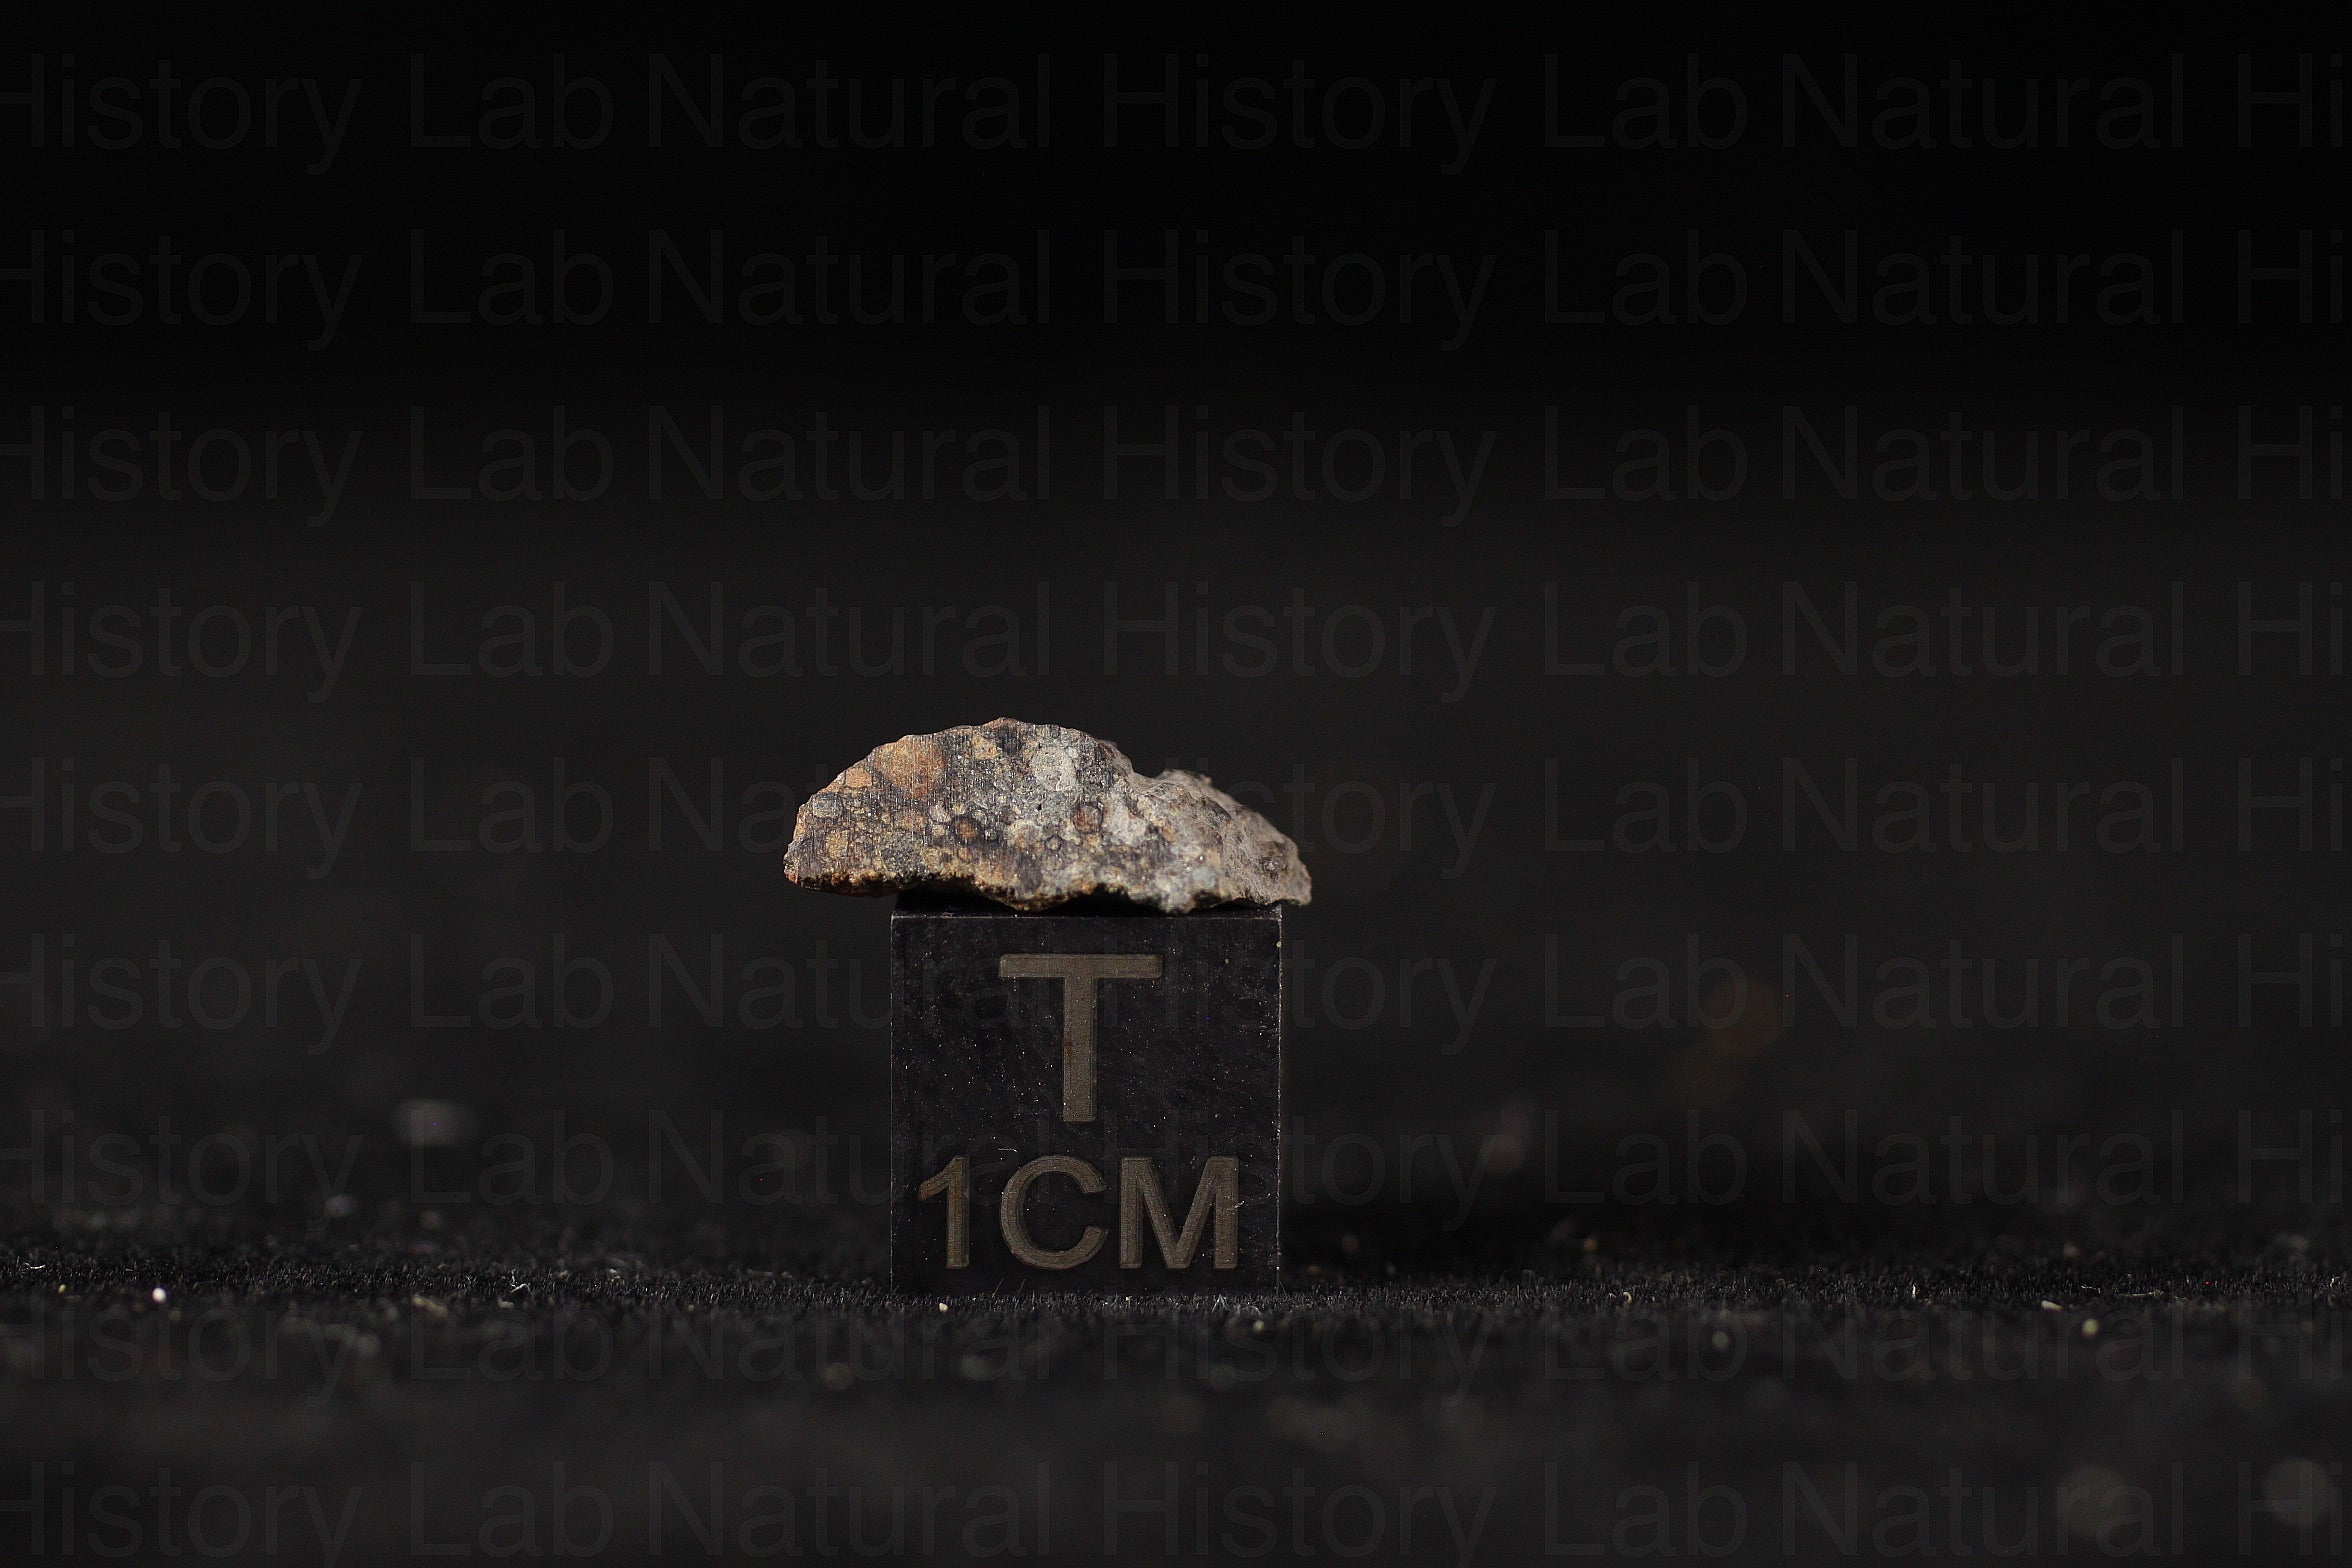 NWA 11905 LL3.10-LL3-LL5 - .4g Part Slice